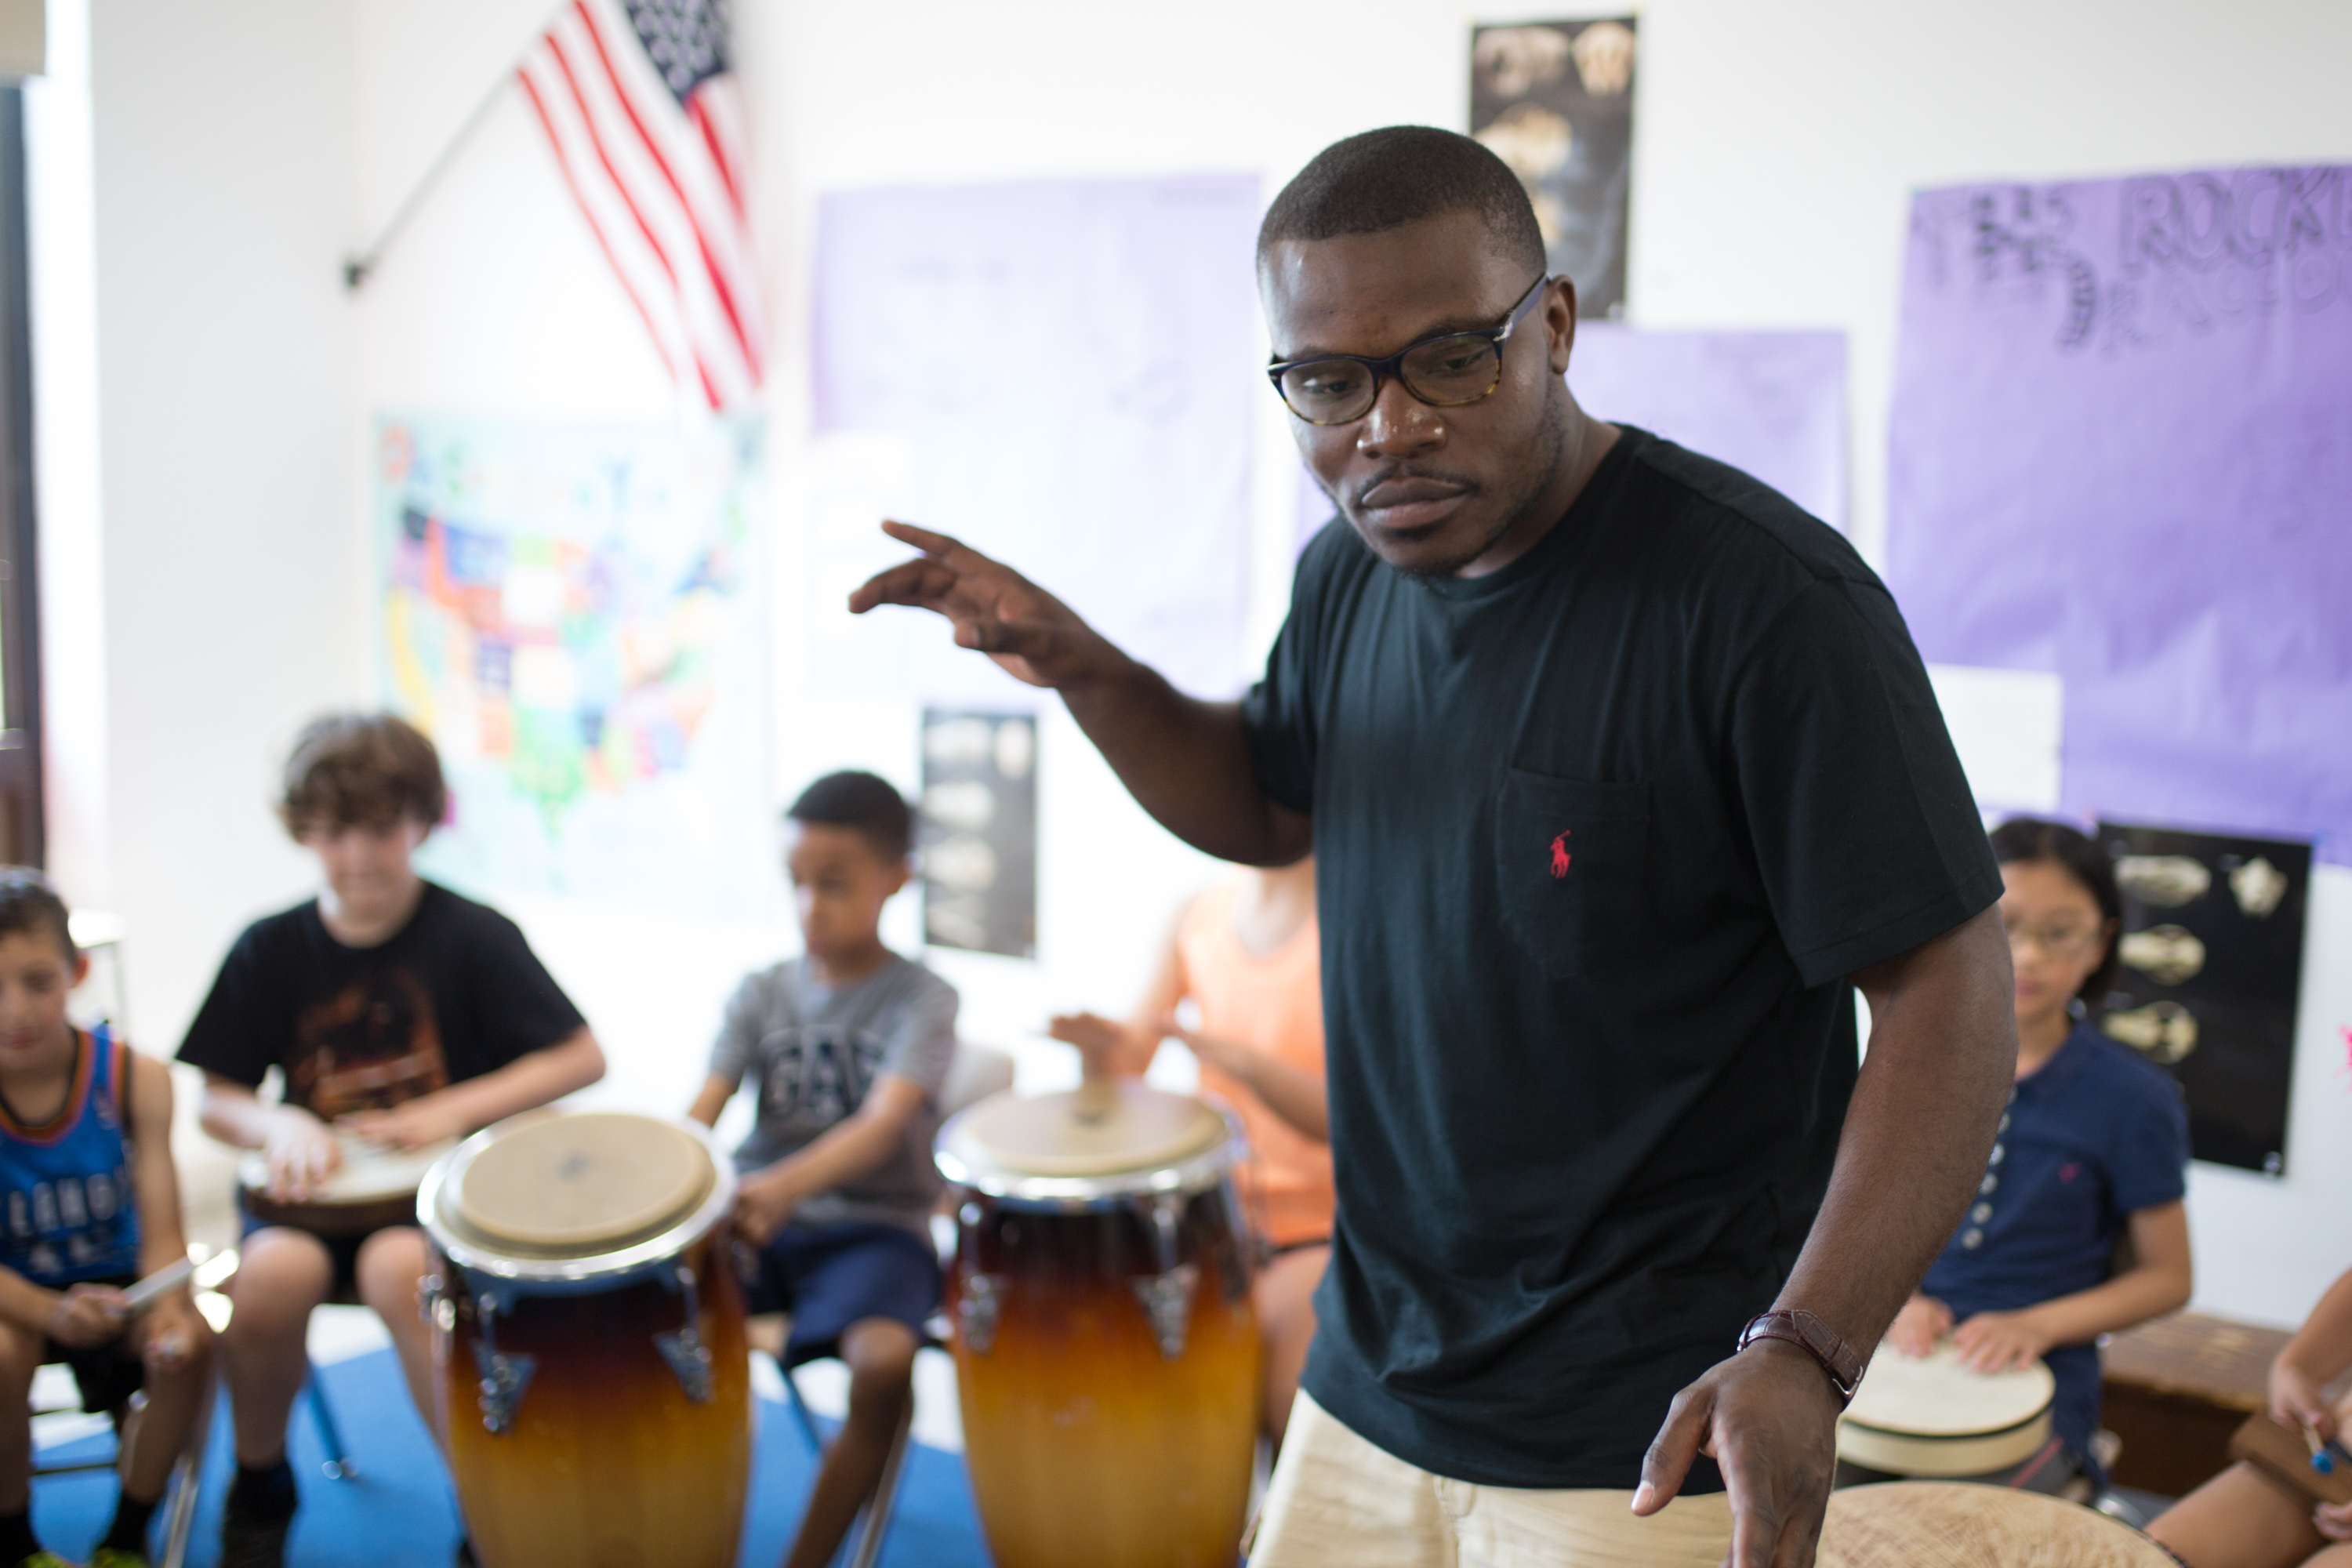 Jonathan Mande teaching a drum class with young children in a circle around him, each child holding a drum